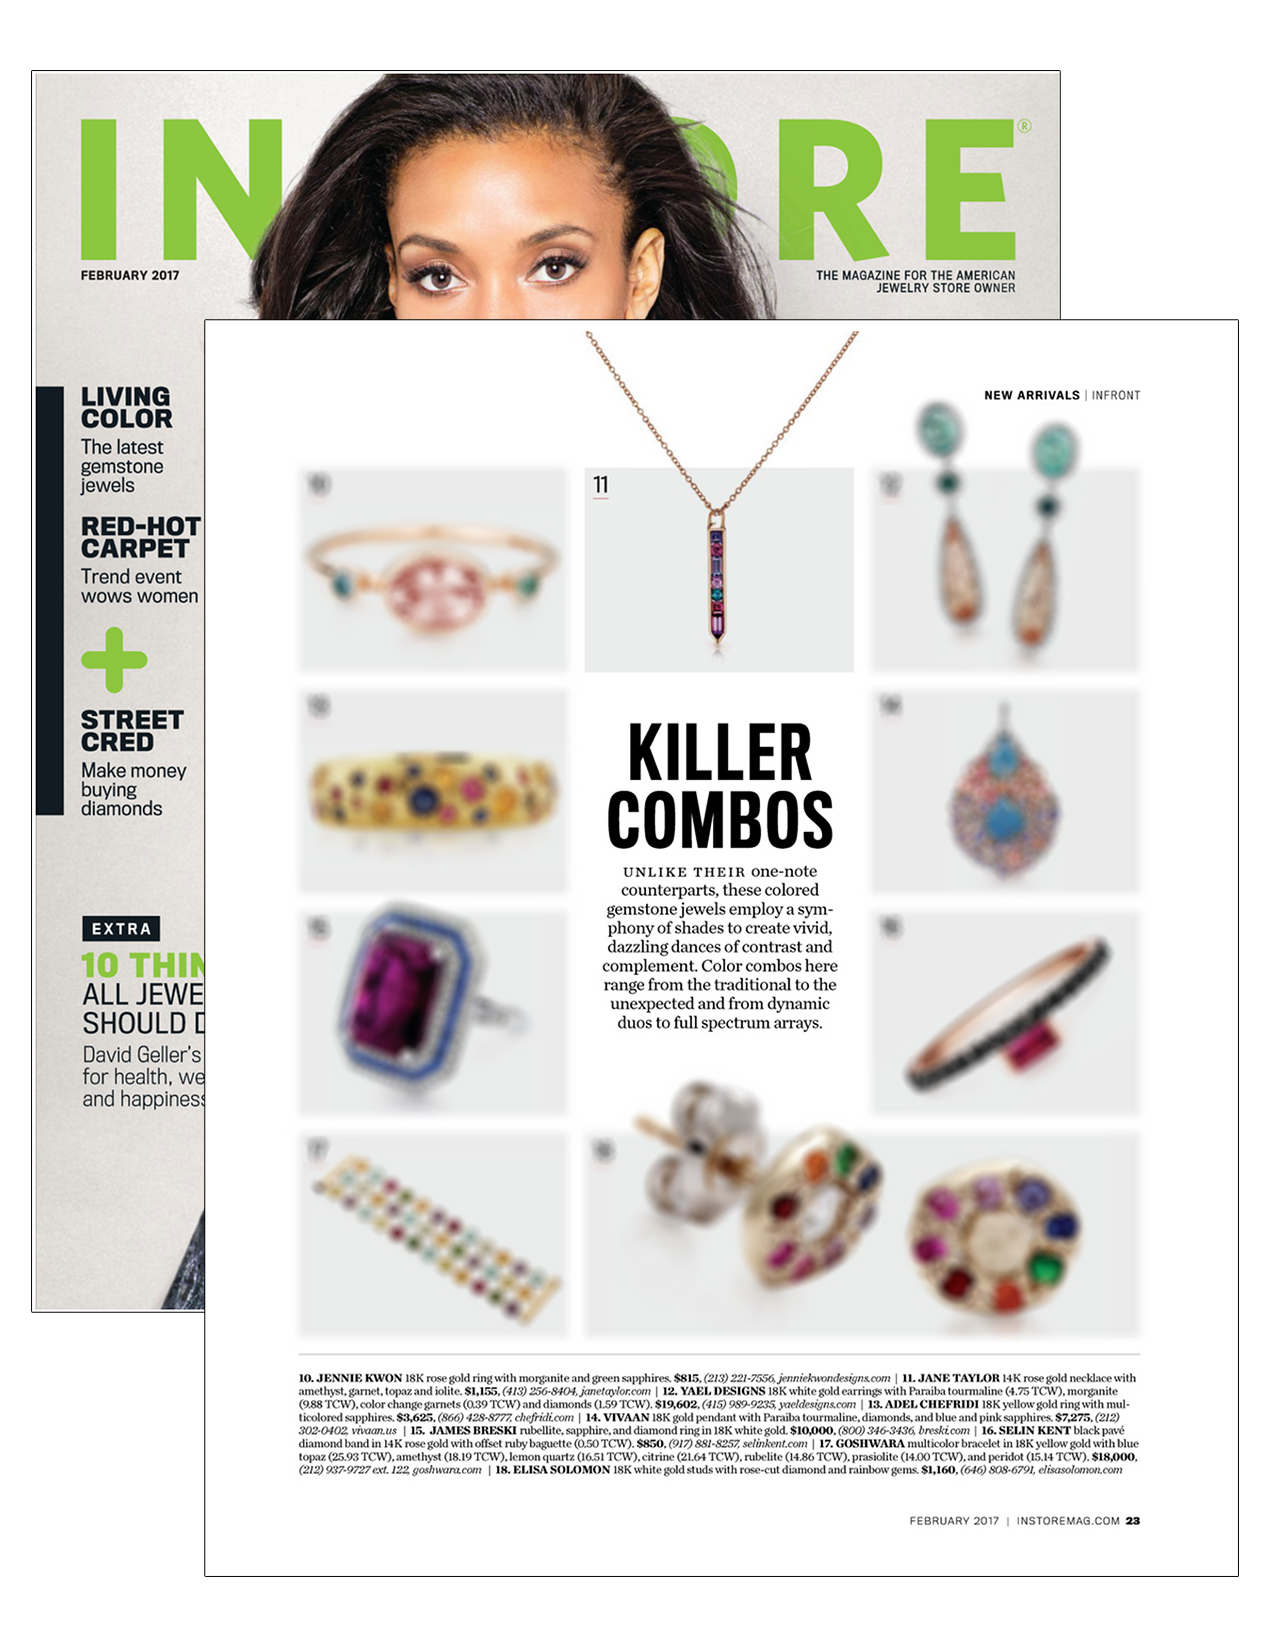 Jane Taylor Vertical Arrow Necklace in the Ferurary Issue of InStore Magazine